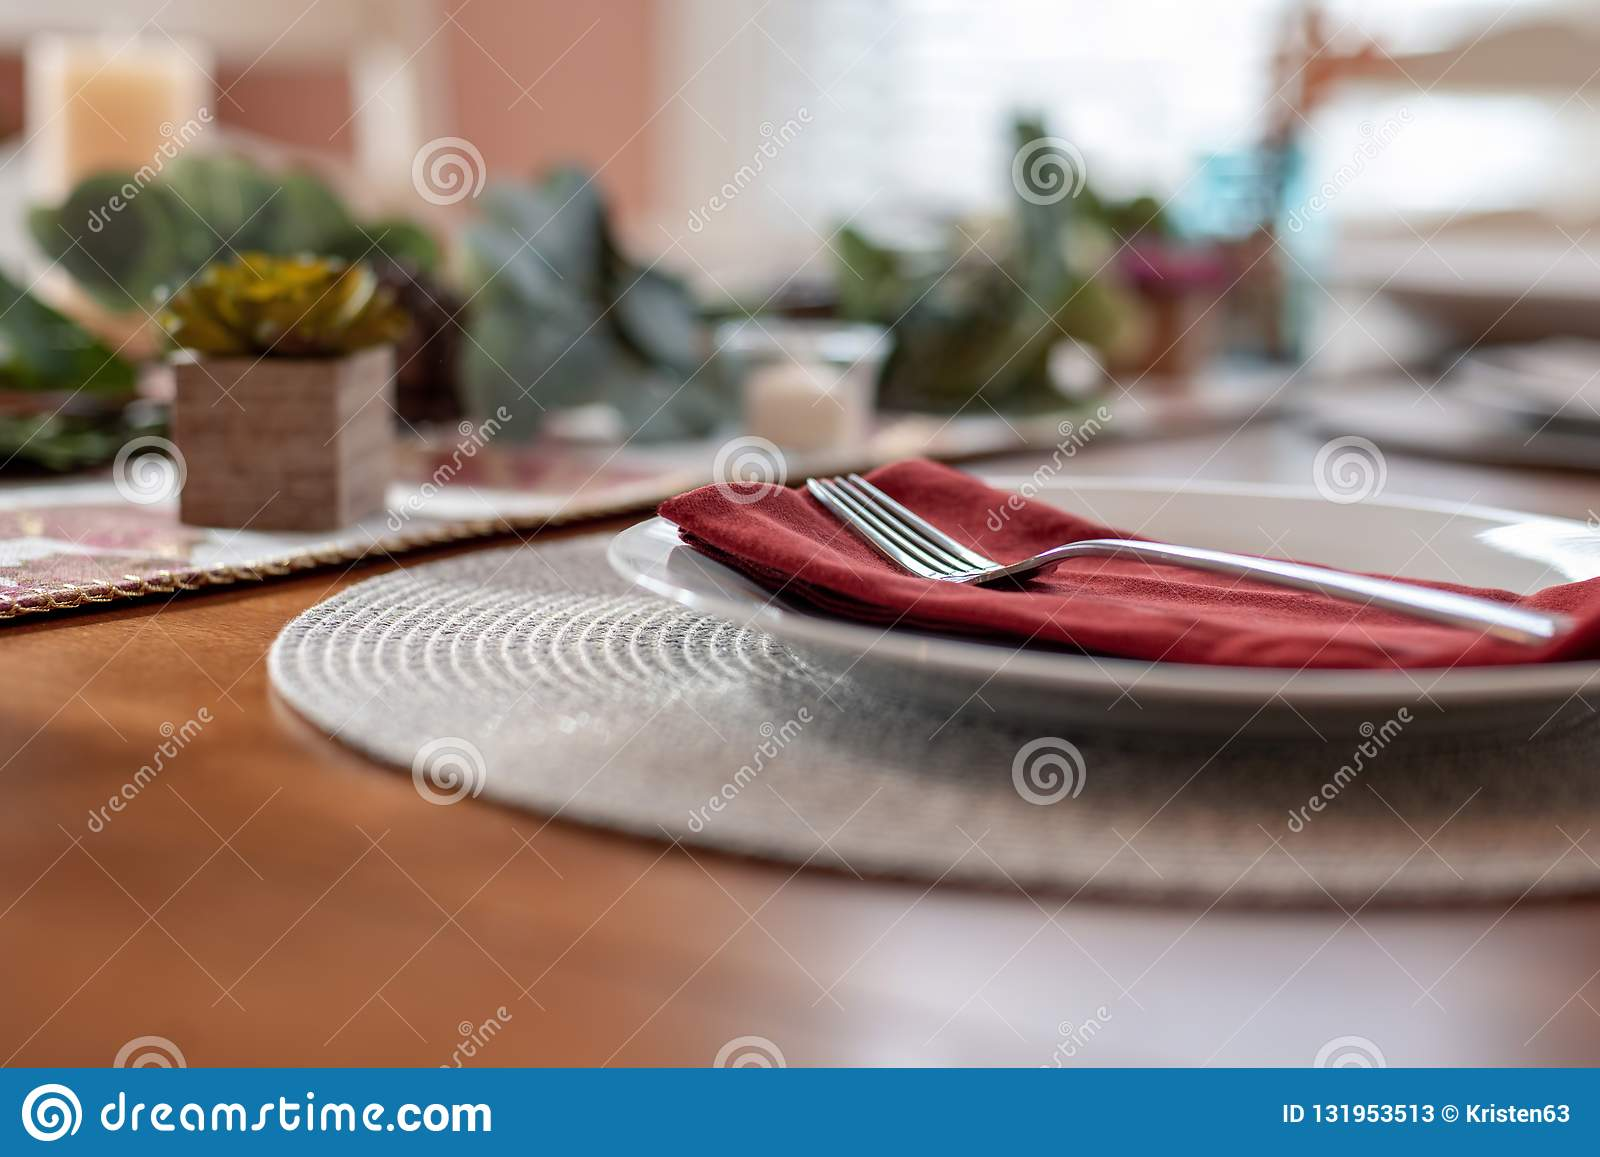 Closeup of fork and plate on table at home